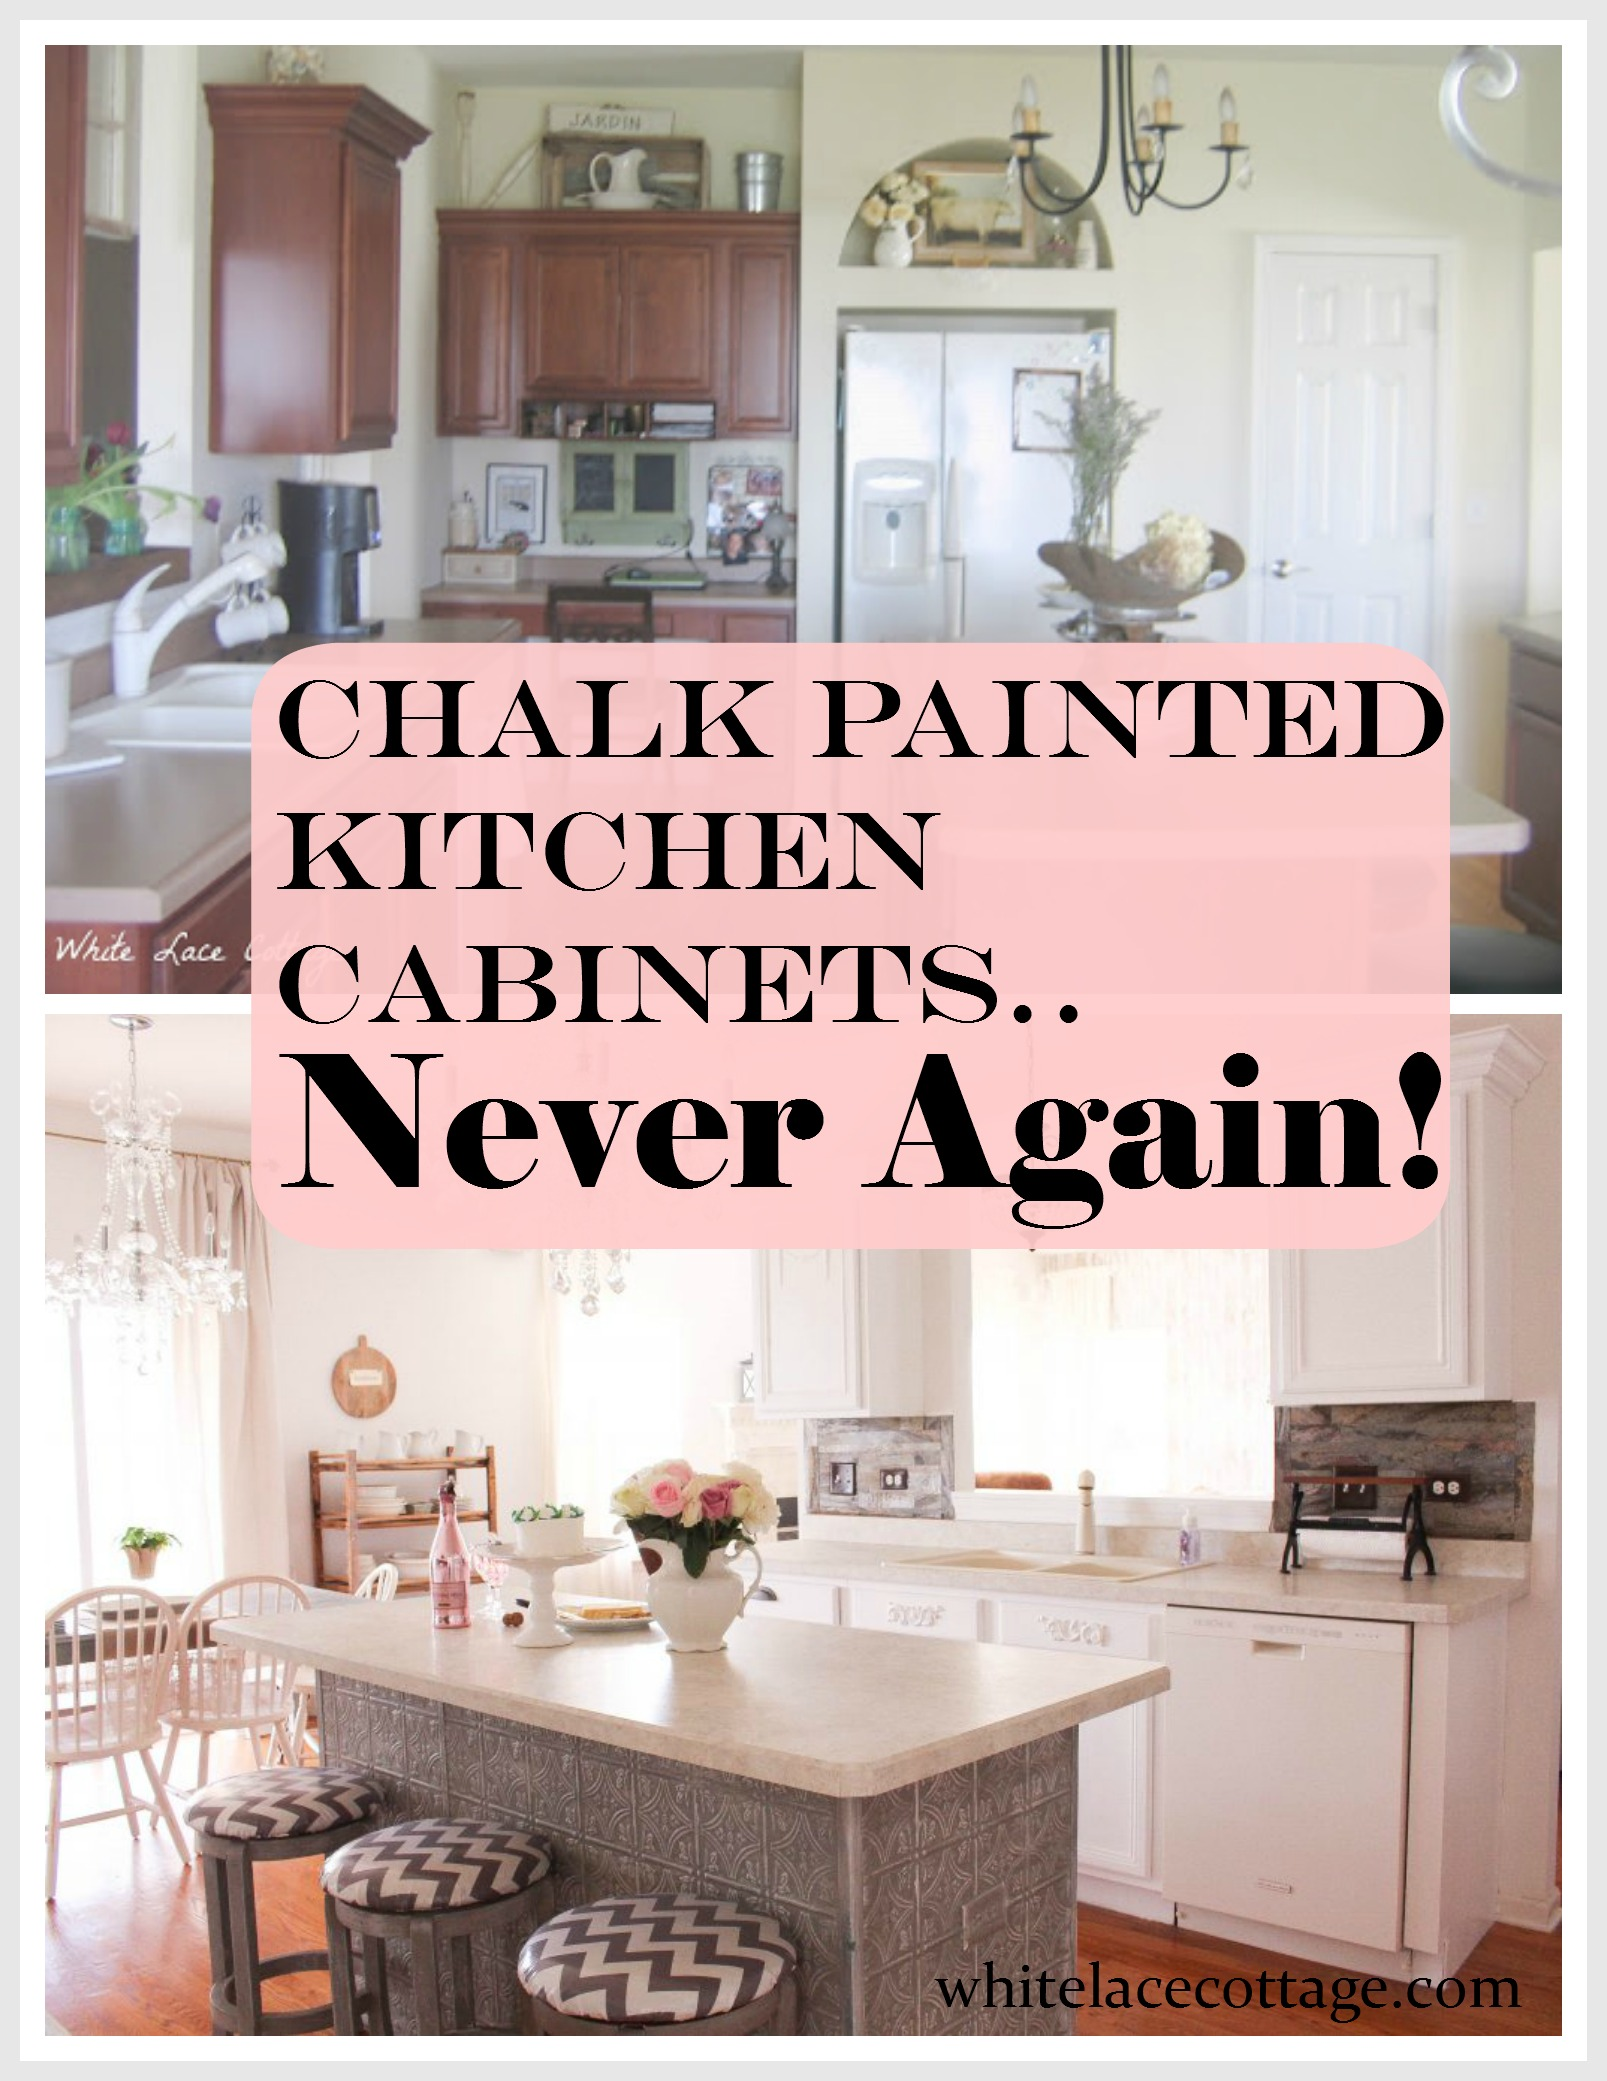 Chalk painted kitchen cabinets never again white lace for How can i update my kitchen cabinets on a budget